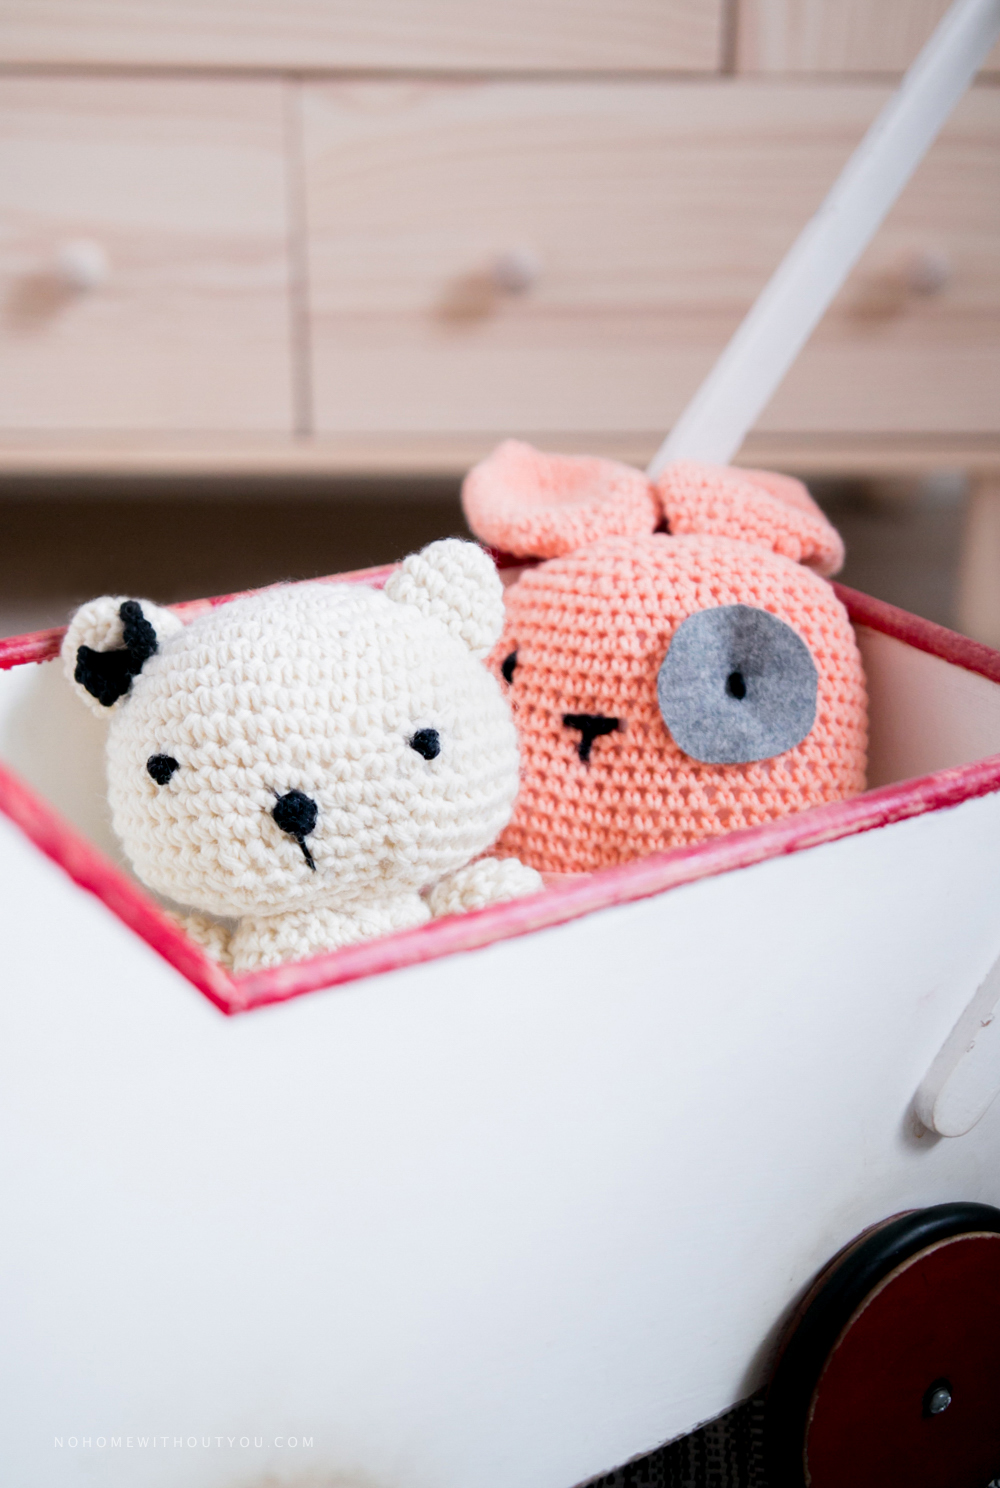 Crocheted amigurumi animals free pattern (1 of 1)